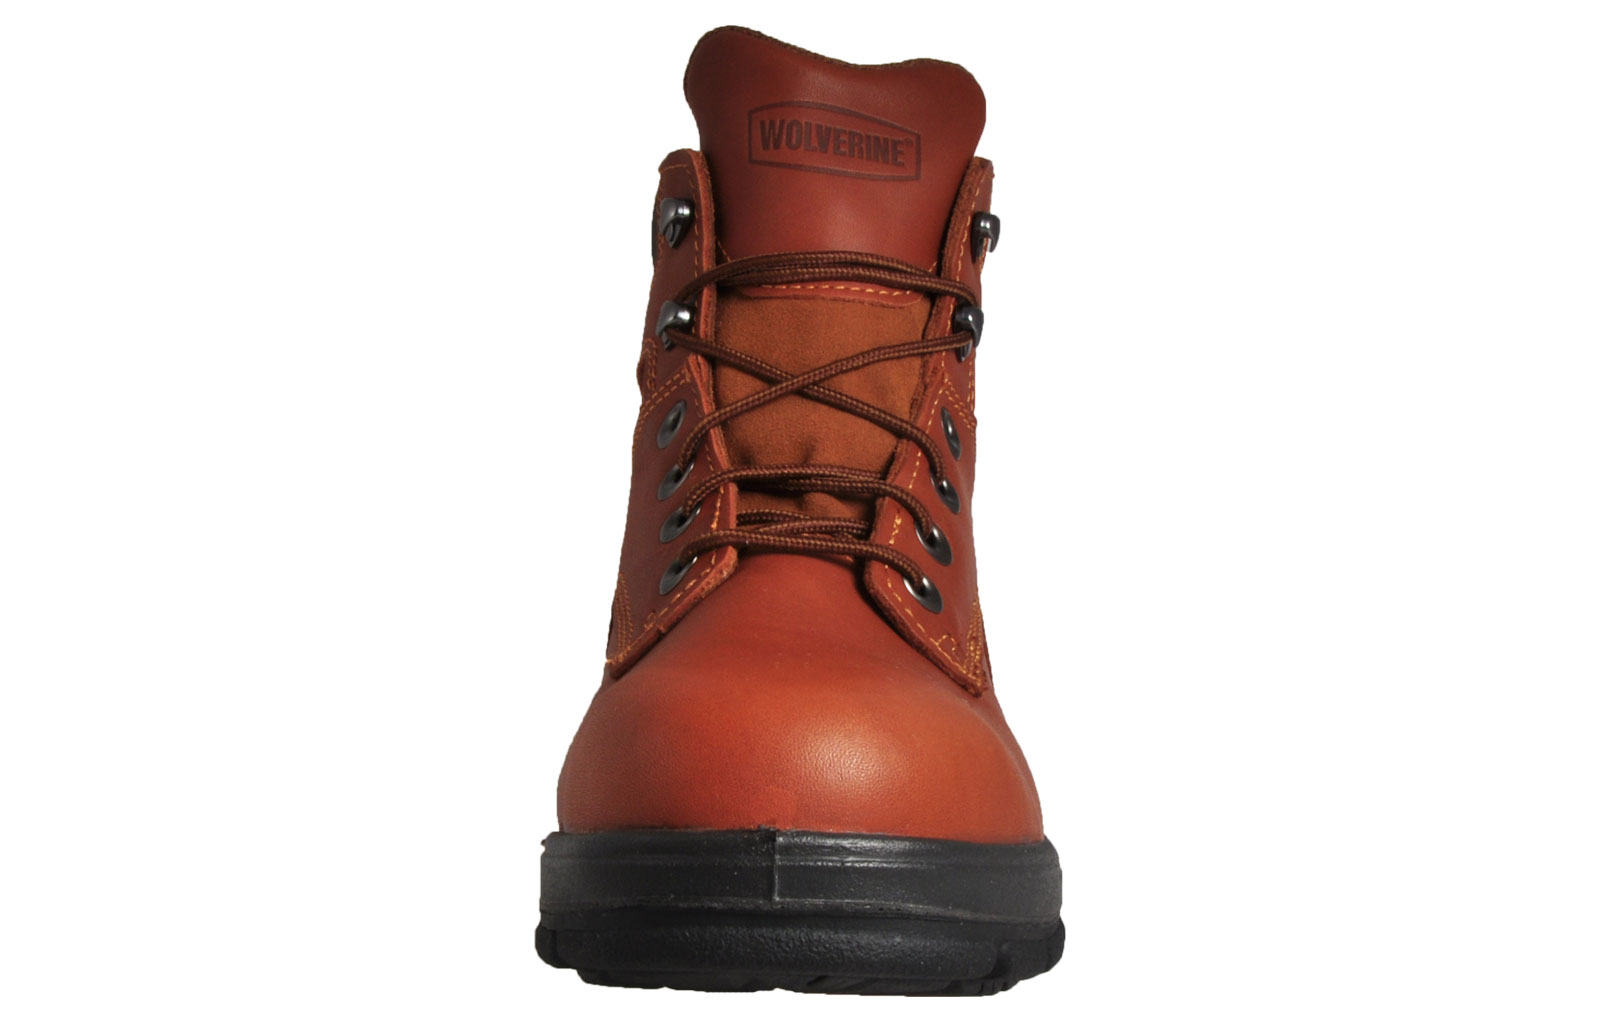 Friendly Rock Fall Texas Ii Brown S3 Hro Composite Toe Cap Safety Rigger Boots Work Boots Work Boots & Shoes Men's Shoes